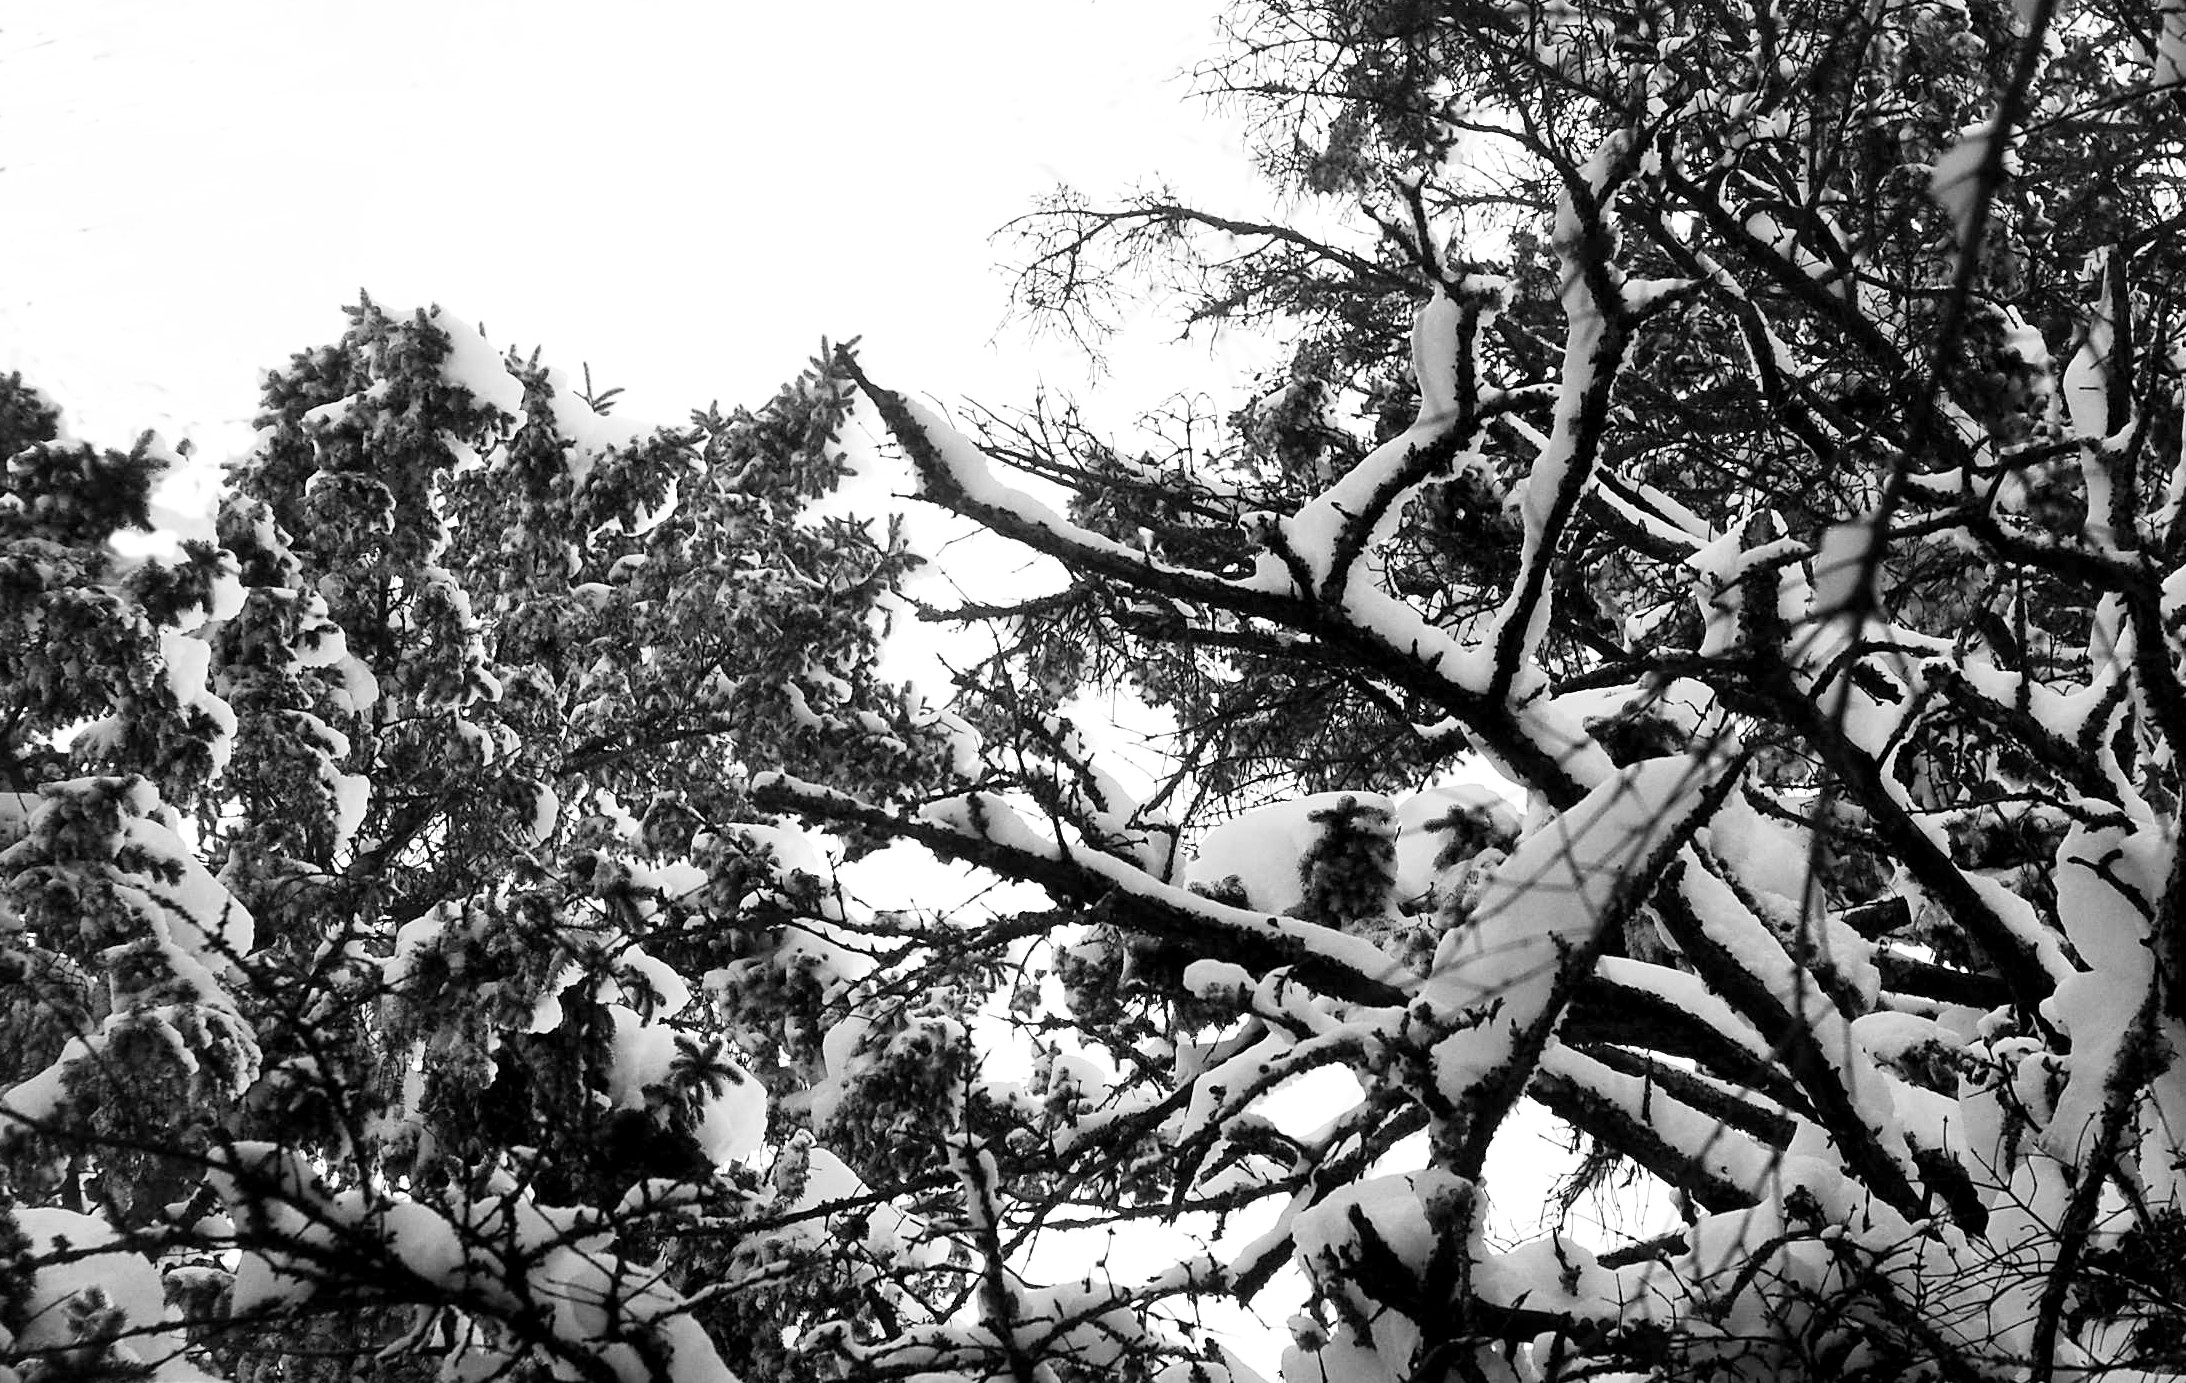 Interlacing Branches after a snow storm, edited Black and White.